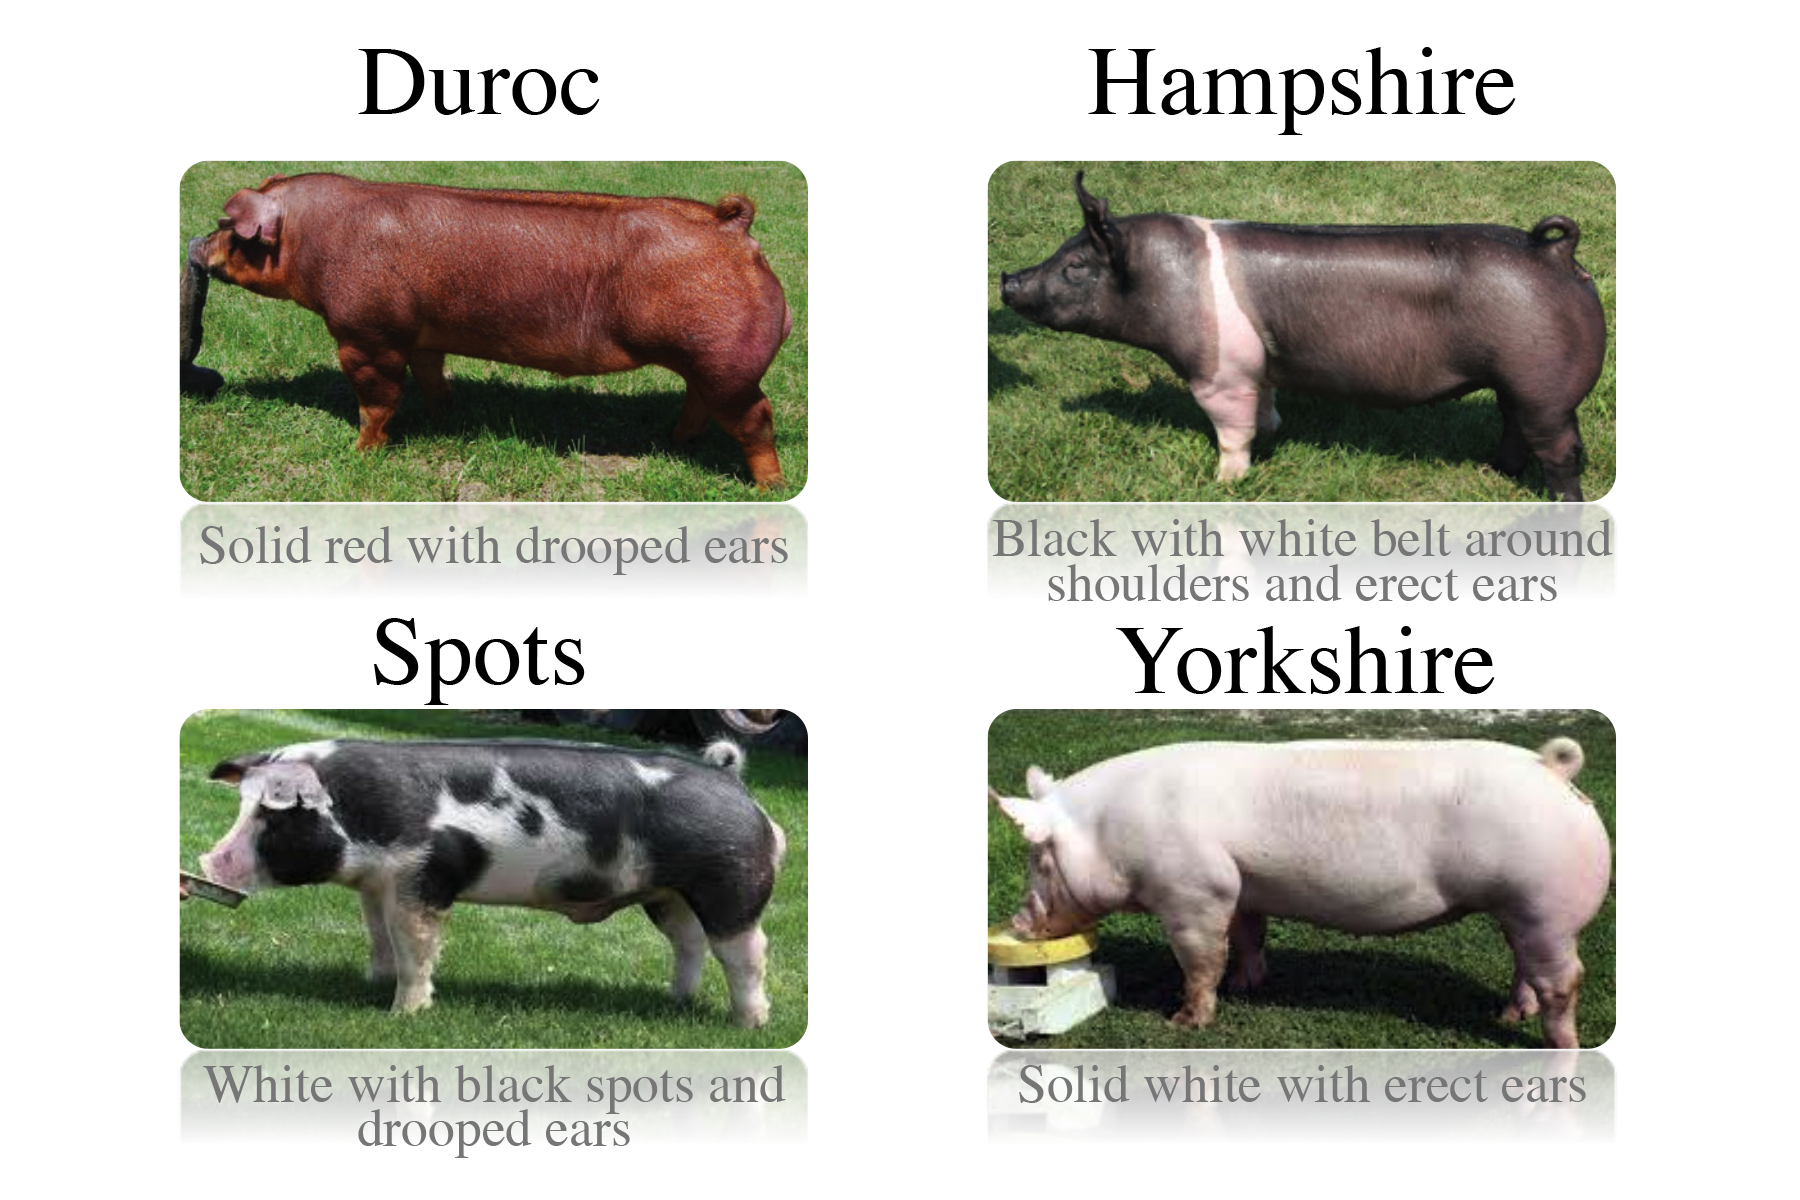 Pork drawing duroc pig. National agriculture in the